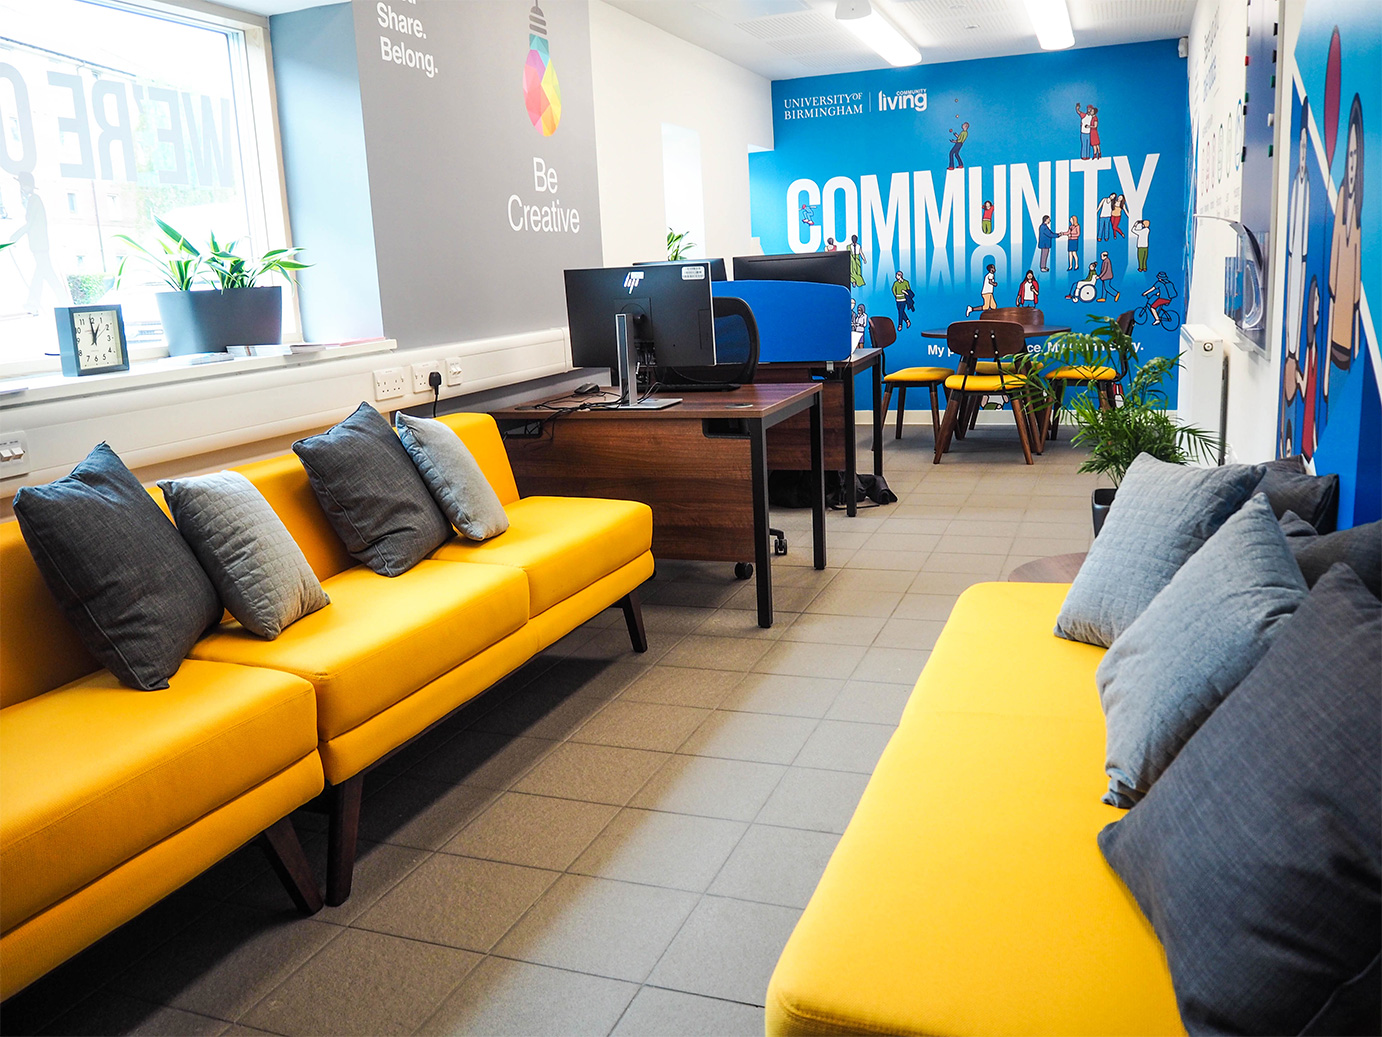 Community Living Hub from the entrance, looking towards the hotdesks